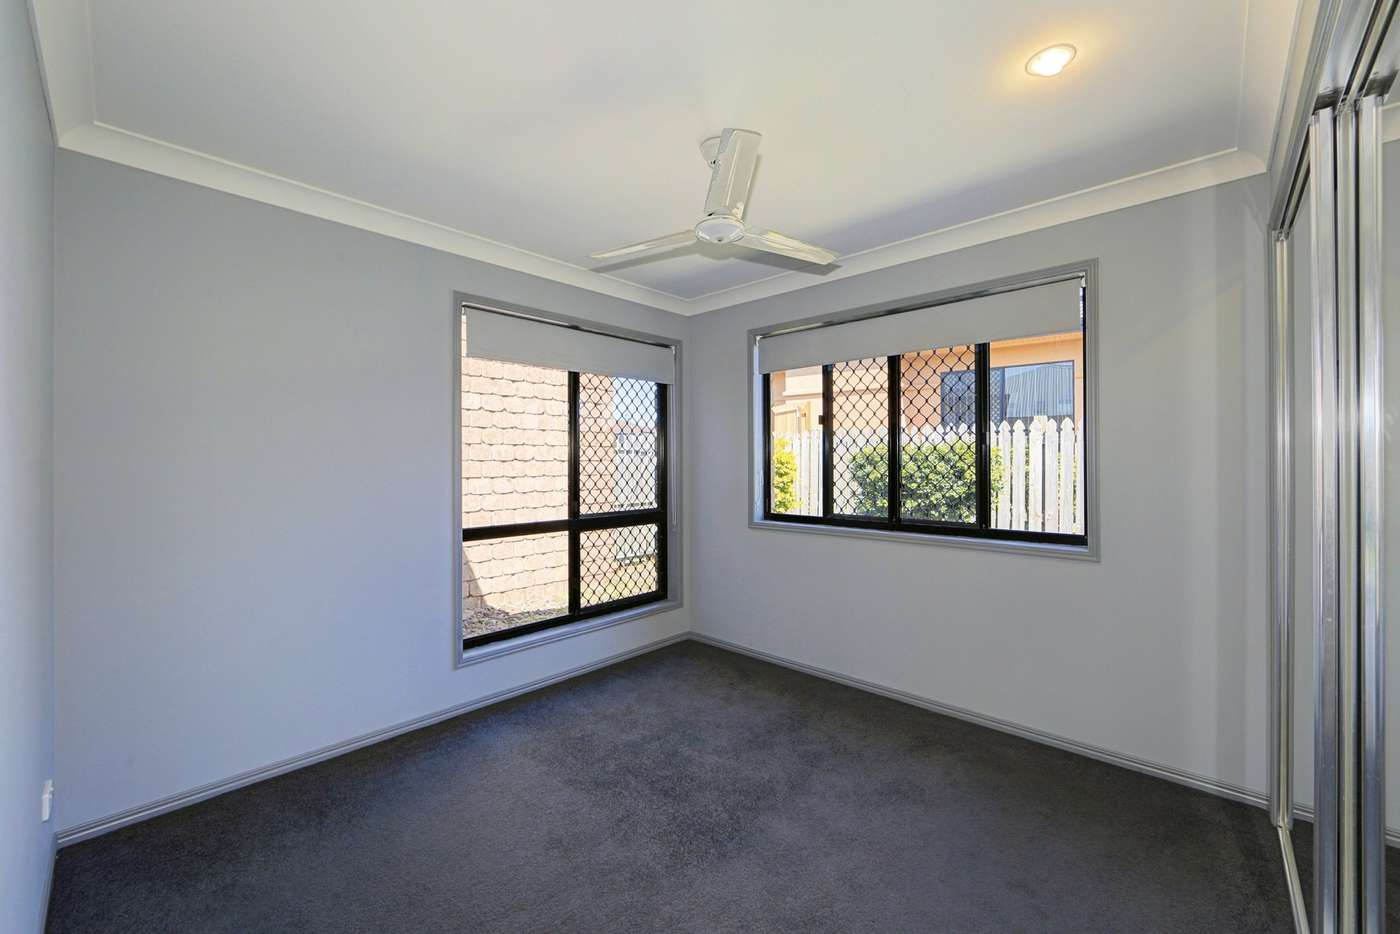 Sixth view of Homely house listing, 225 Barolin Esplanade, Coral Cove QLD 4670